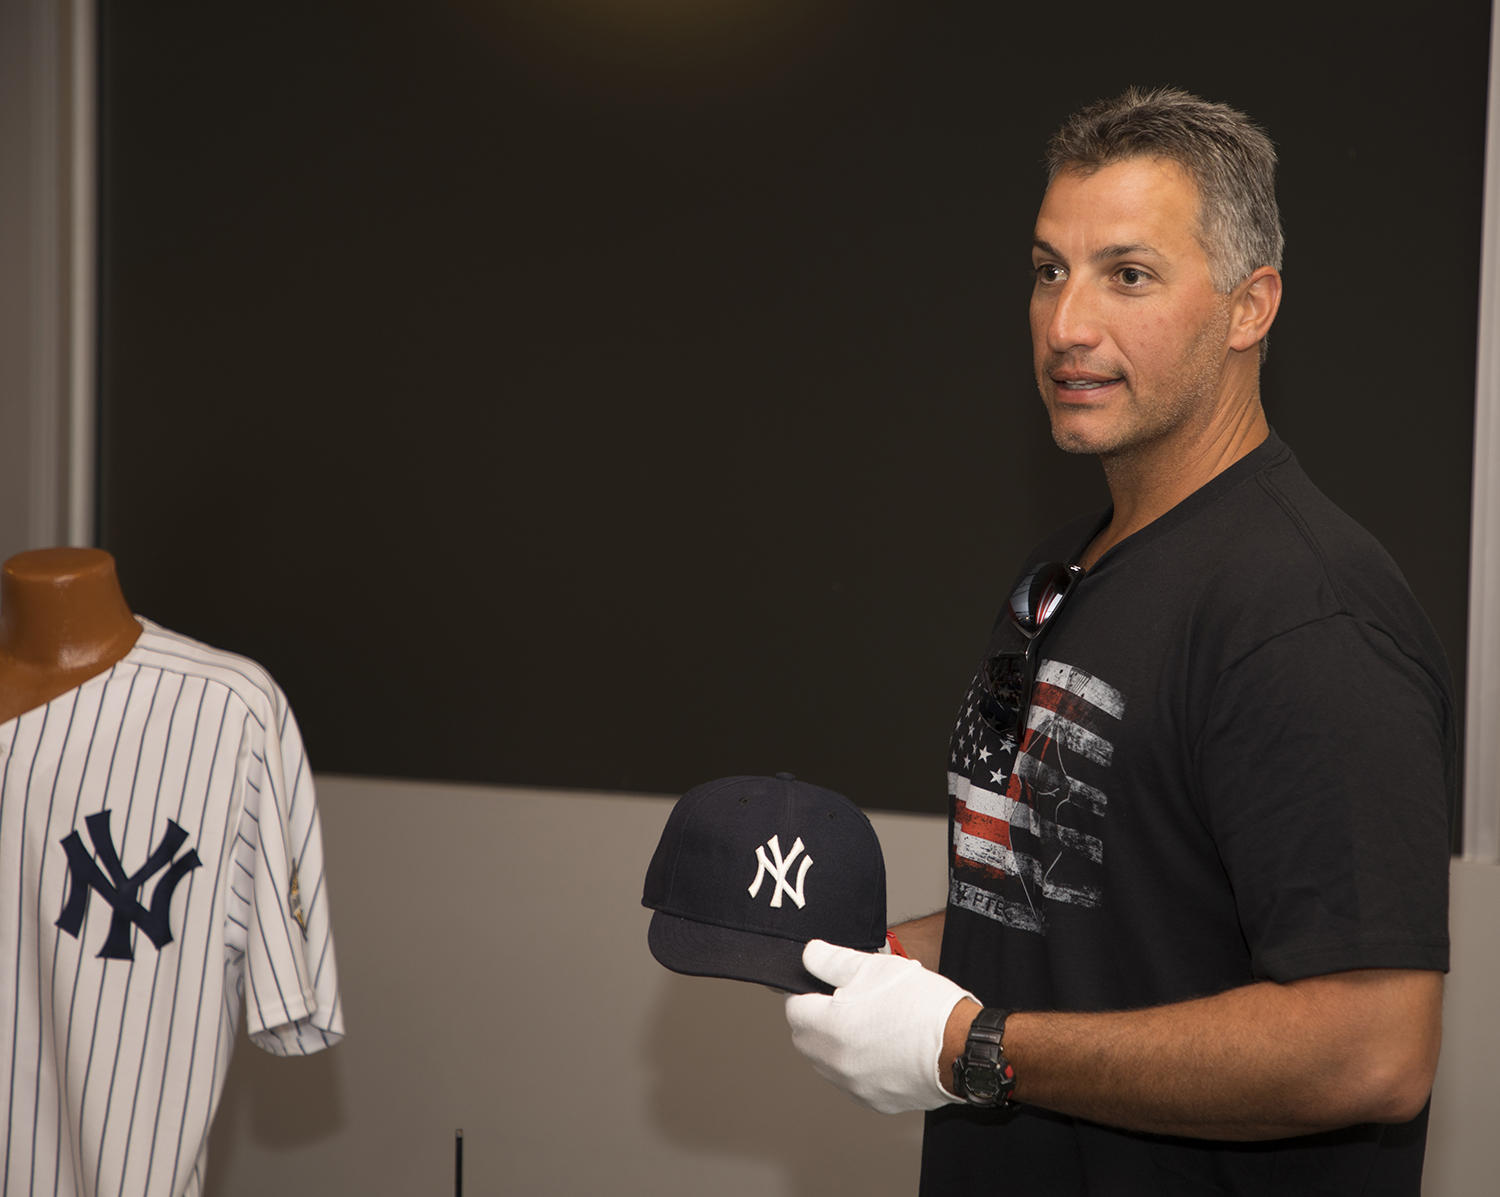 Andy Pettitte recently visited Cooperstown for the first time since 1991, when he was playing for the Oneonta Yankees in the New York-Penn League. (Milo Stewart Jr. / National Baseball Hall of Fame and Museum)